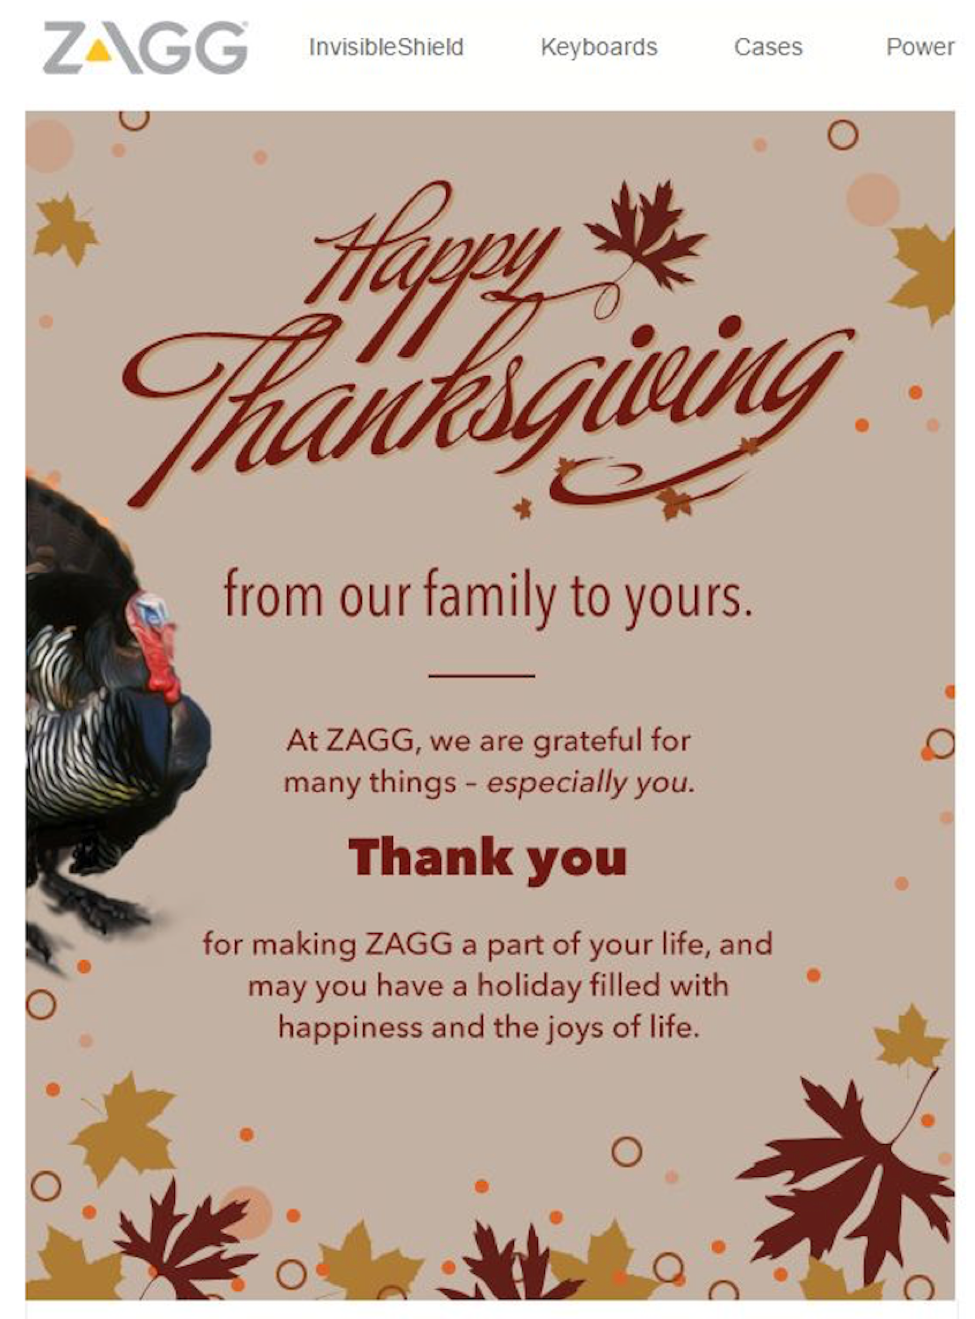 Thanksgiving email inspiration robly marketing blog thanksgiving email m4hsunfo